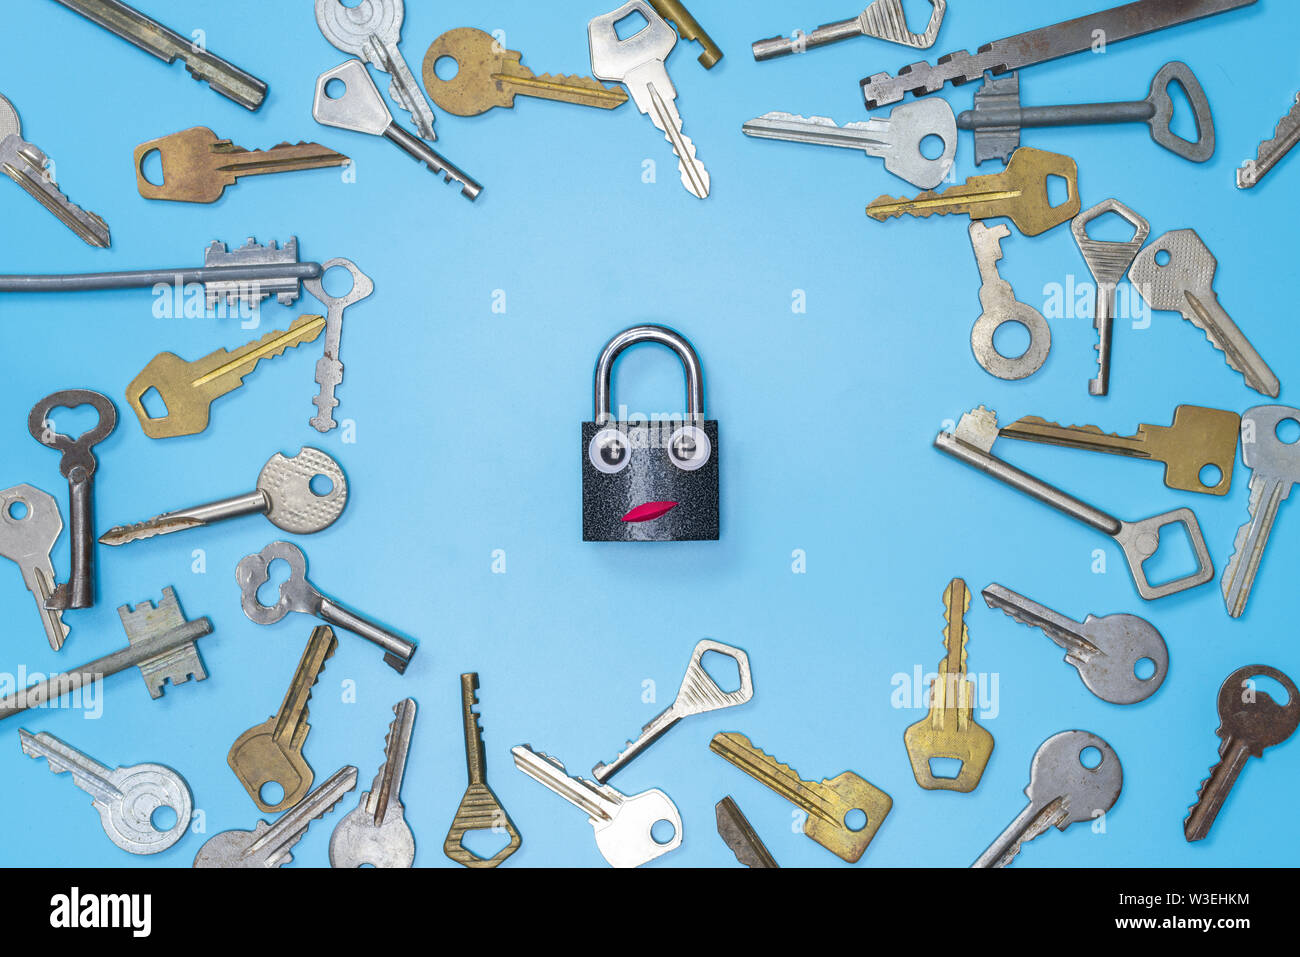 Keys set with funny lock concept, blue background. Choosing the best security system for home and business. Door lock keys and safes for property secu - Stock Image